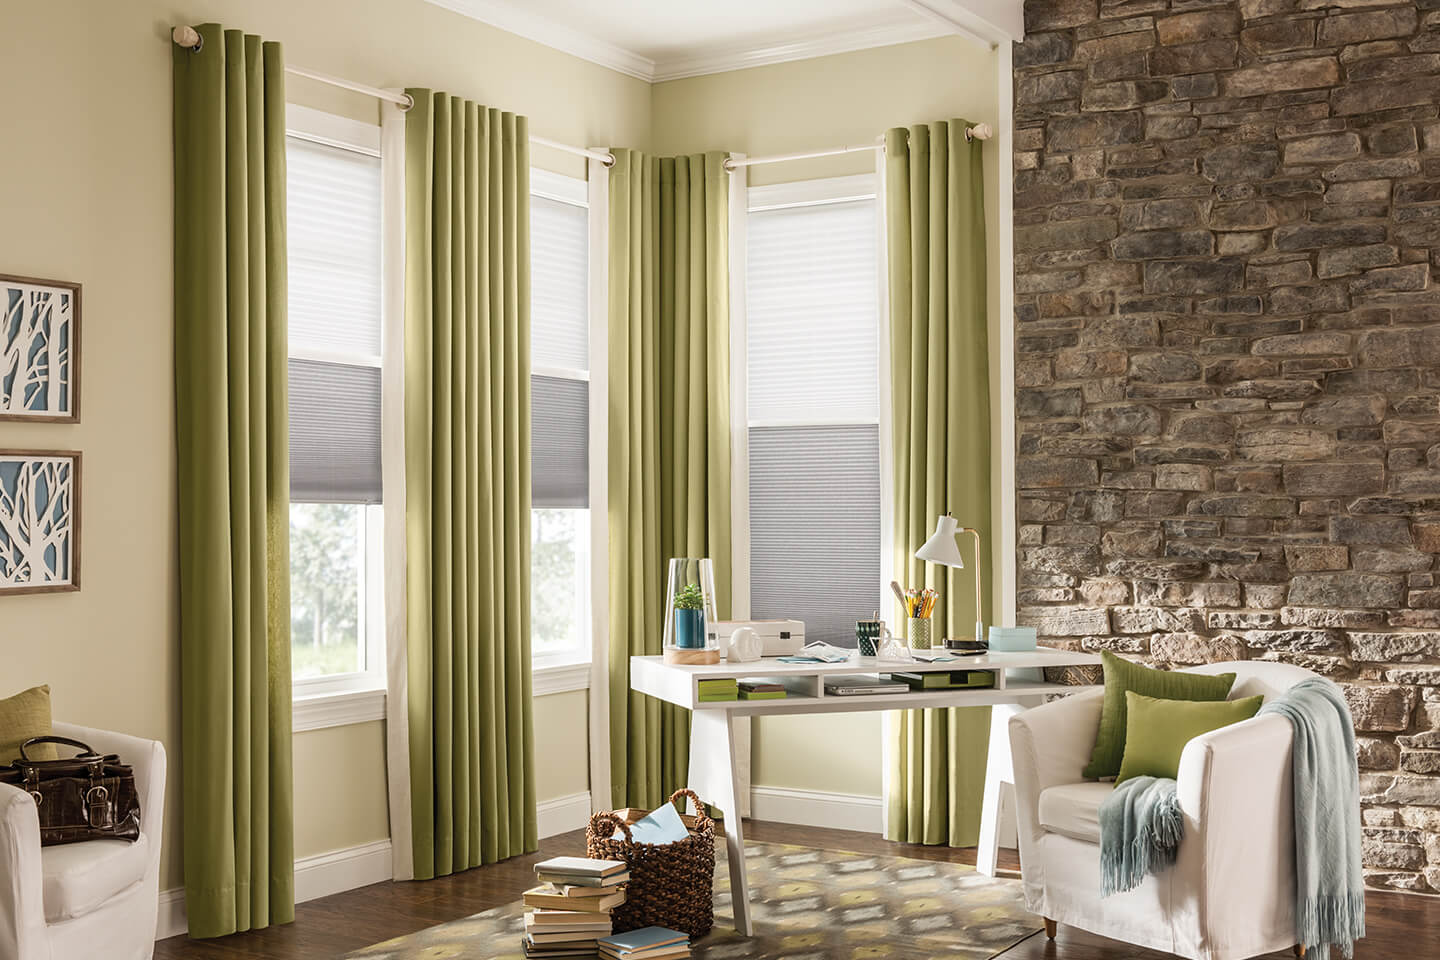 crown ideas decor elegant with blinds interior bail bali wall wood home and white costco paint